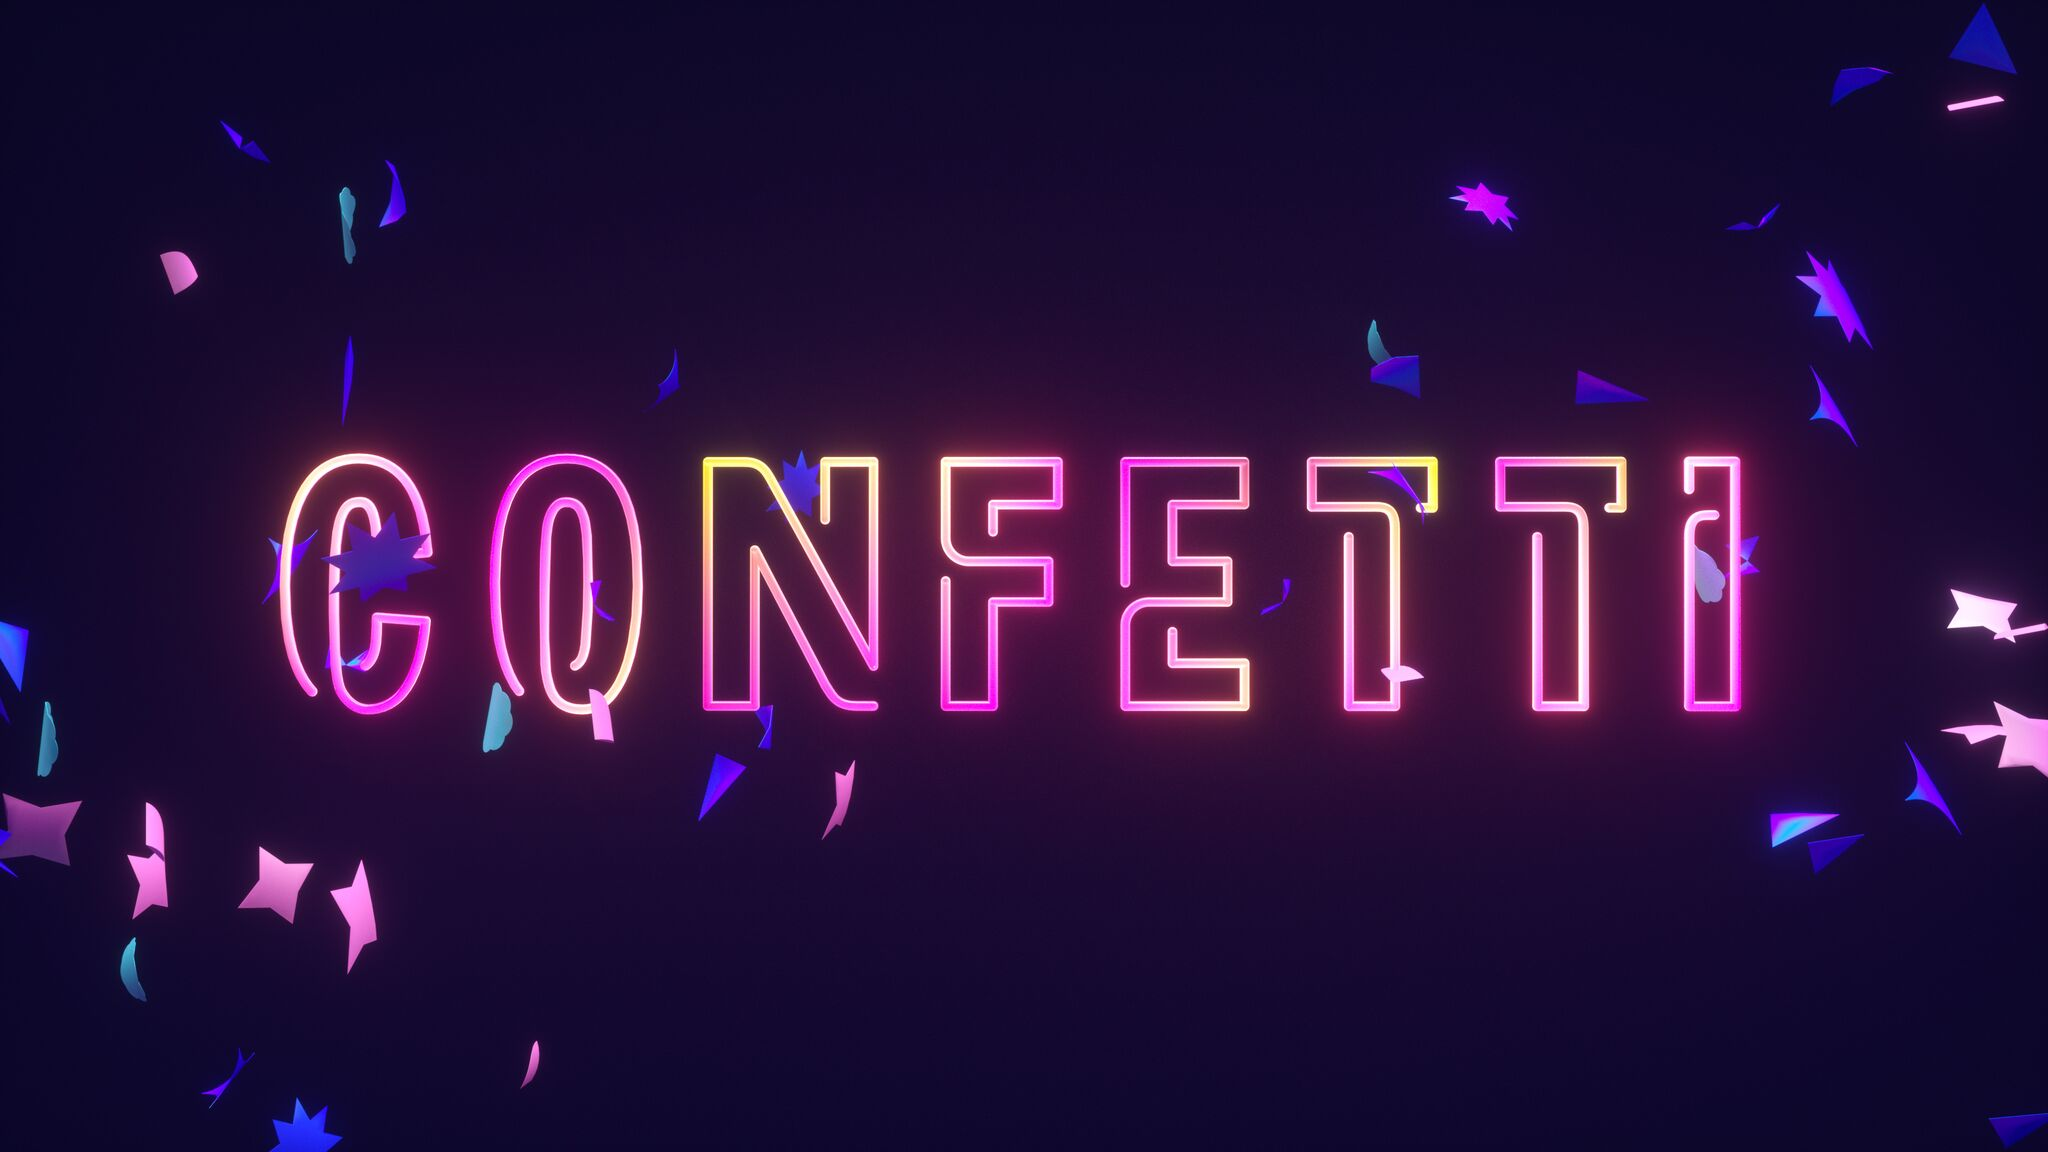 Facebook Game Show Confetti Goes Global With Fremantle Deadline 2048x1152